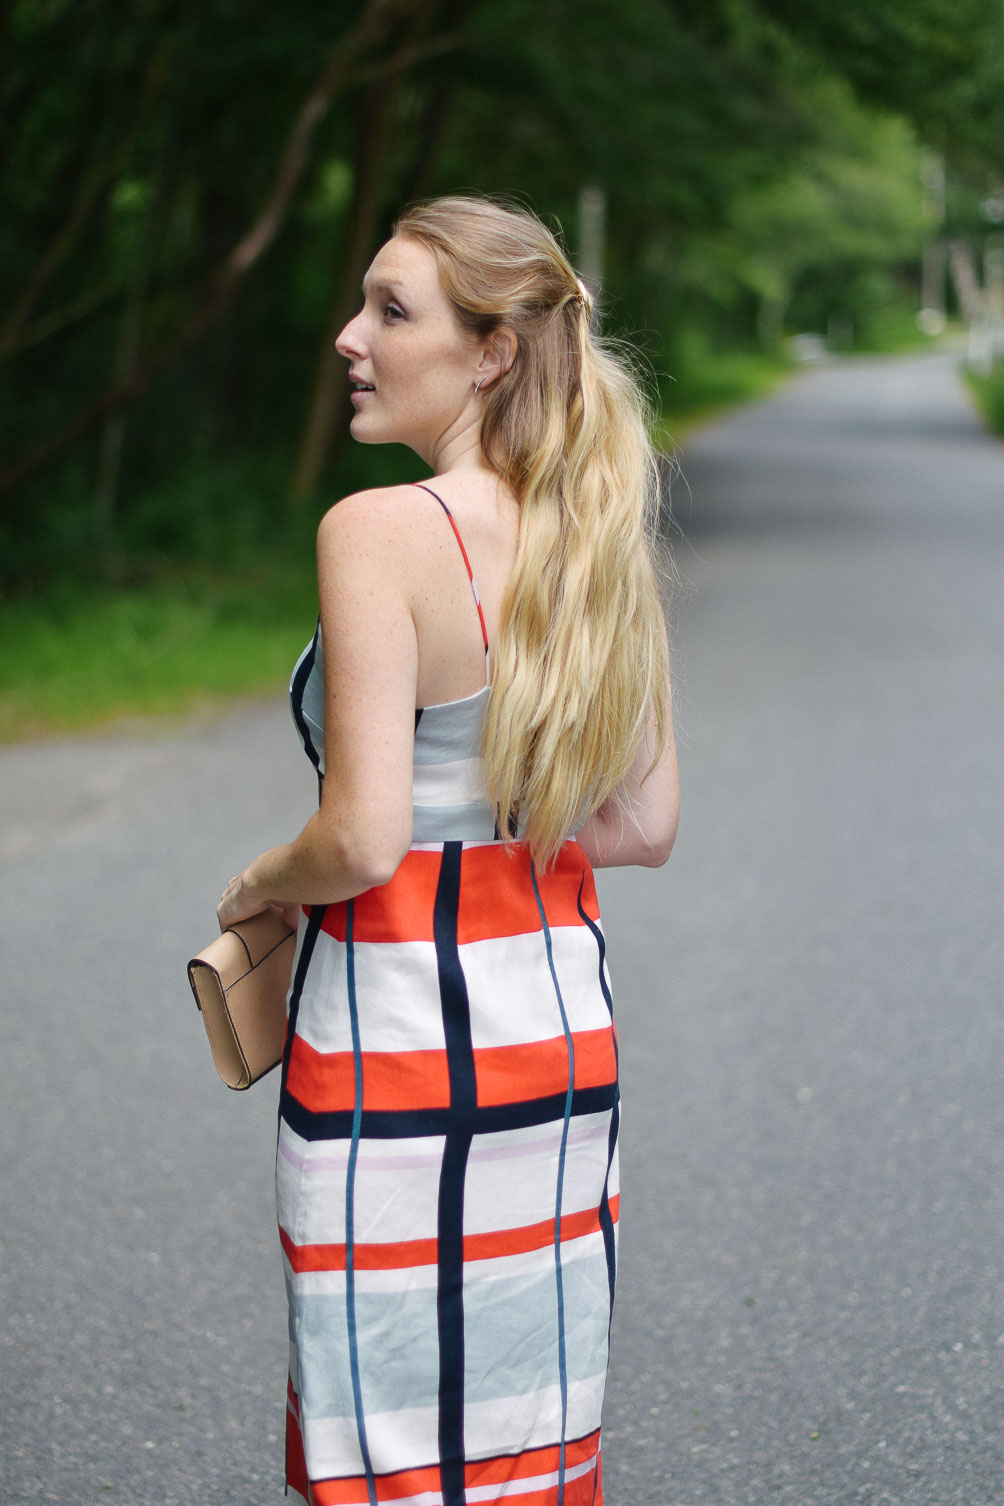 styling an Ann Taylor striped linen dress with cork wedge sandals for easy summer style